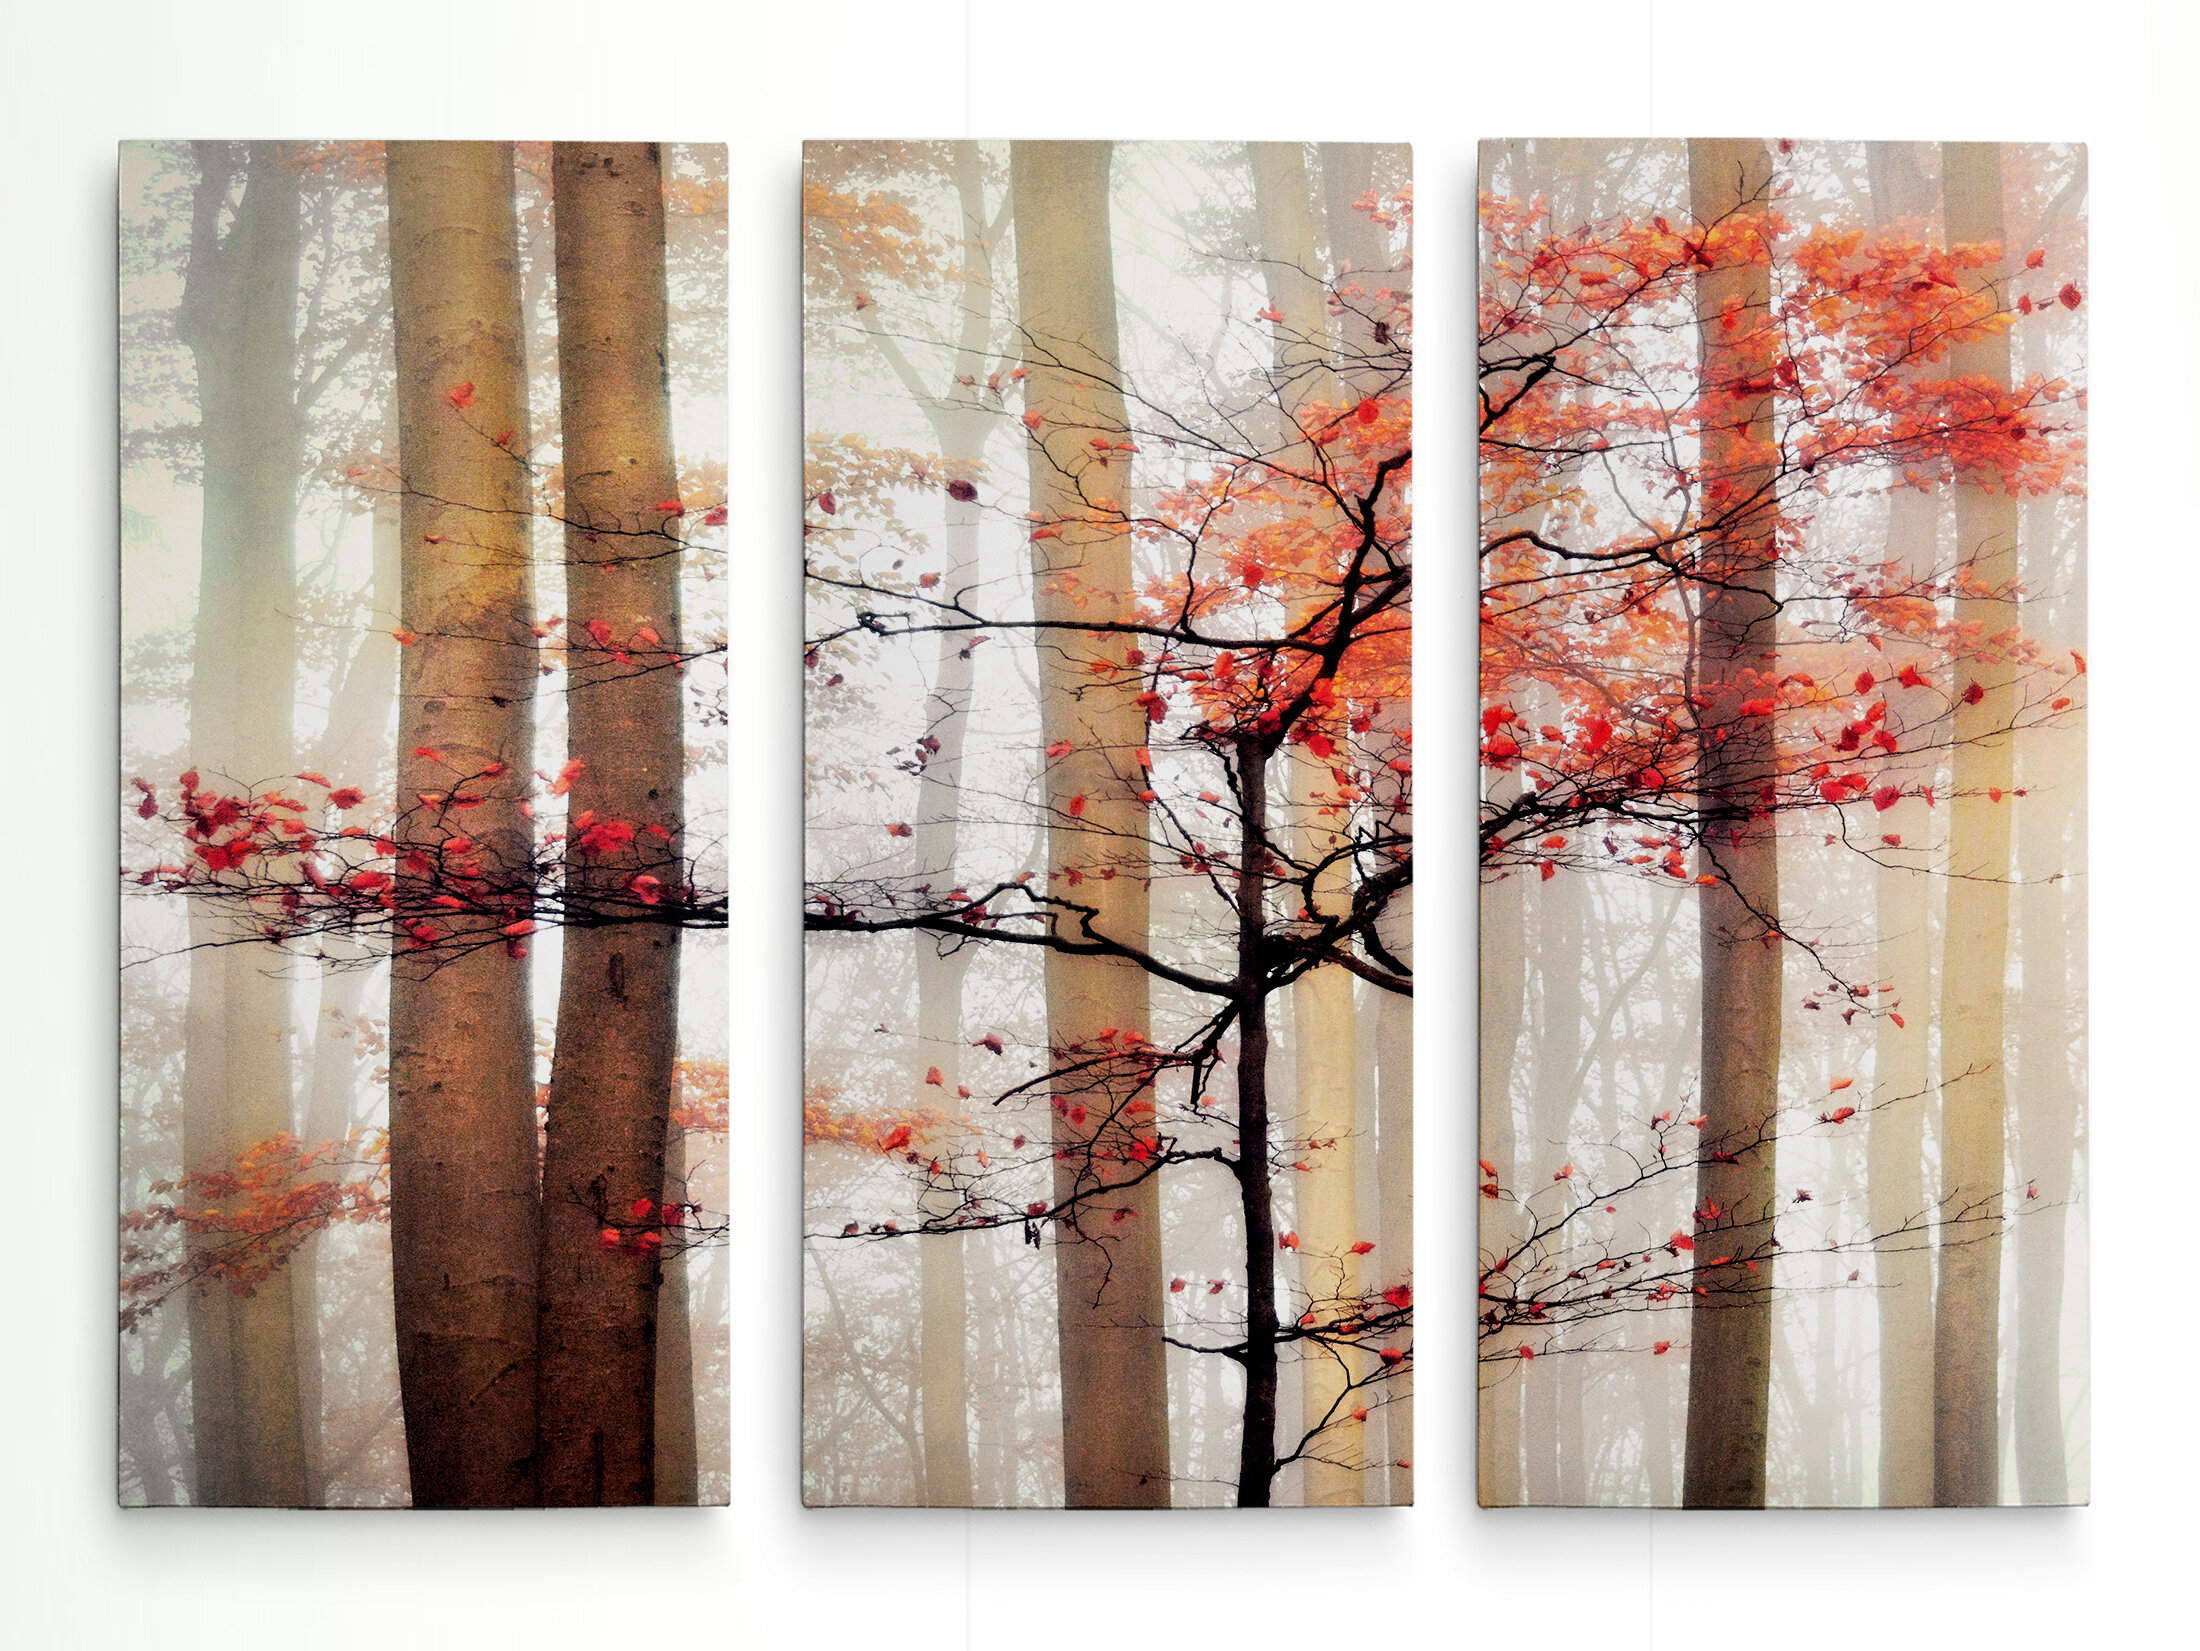 Latitude Run Orange Awakening 3 Piece Wrapped Canvas Photograph Print Set Reviews Wayfair